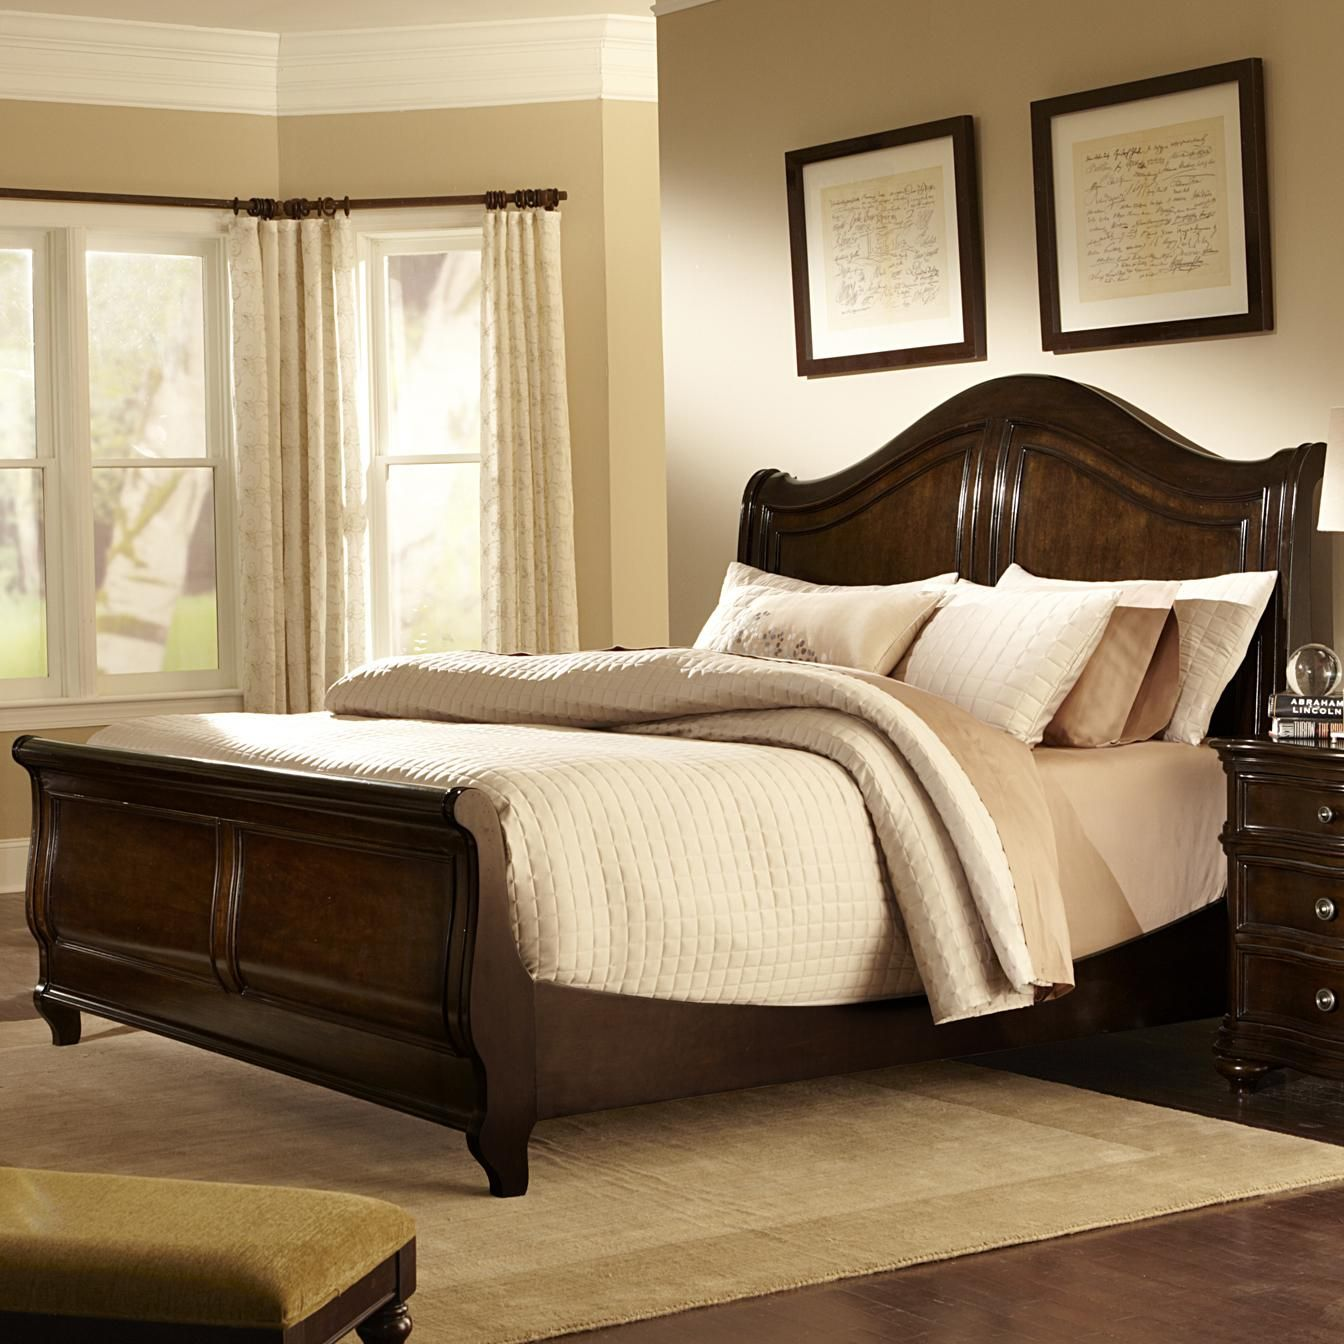 kingston plantation king sleigh bed by liberty furniture | home